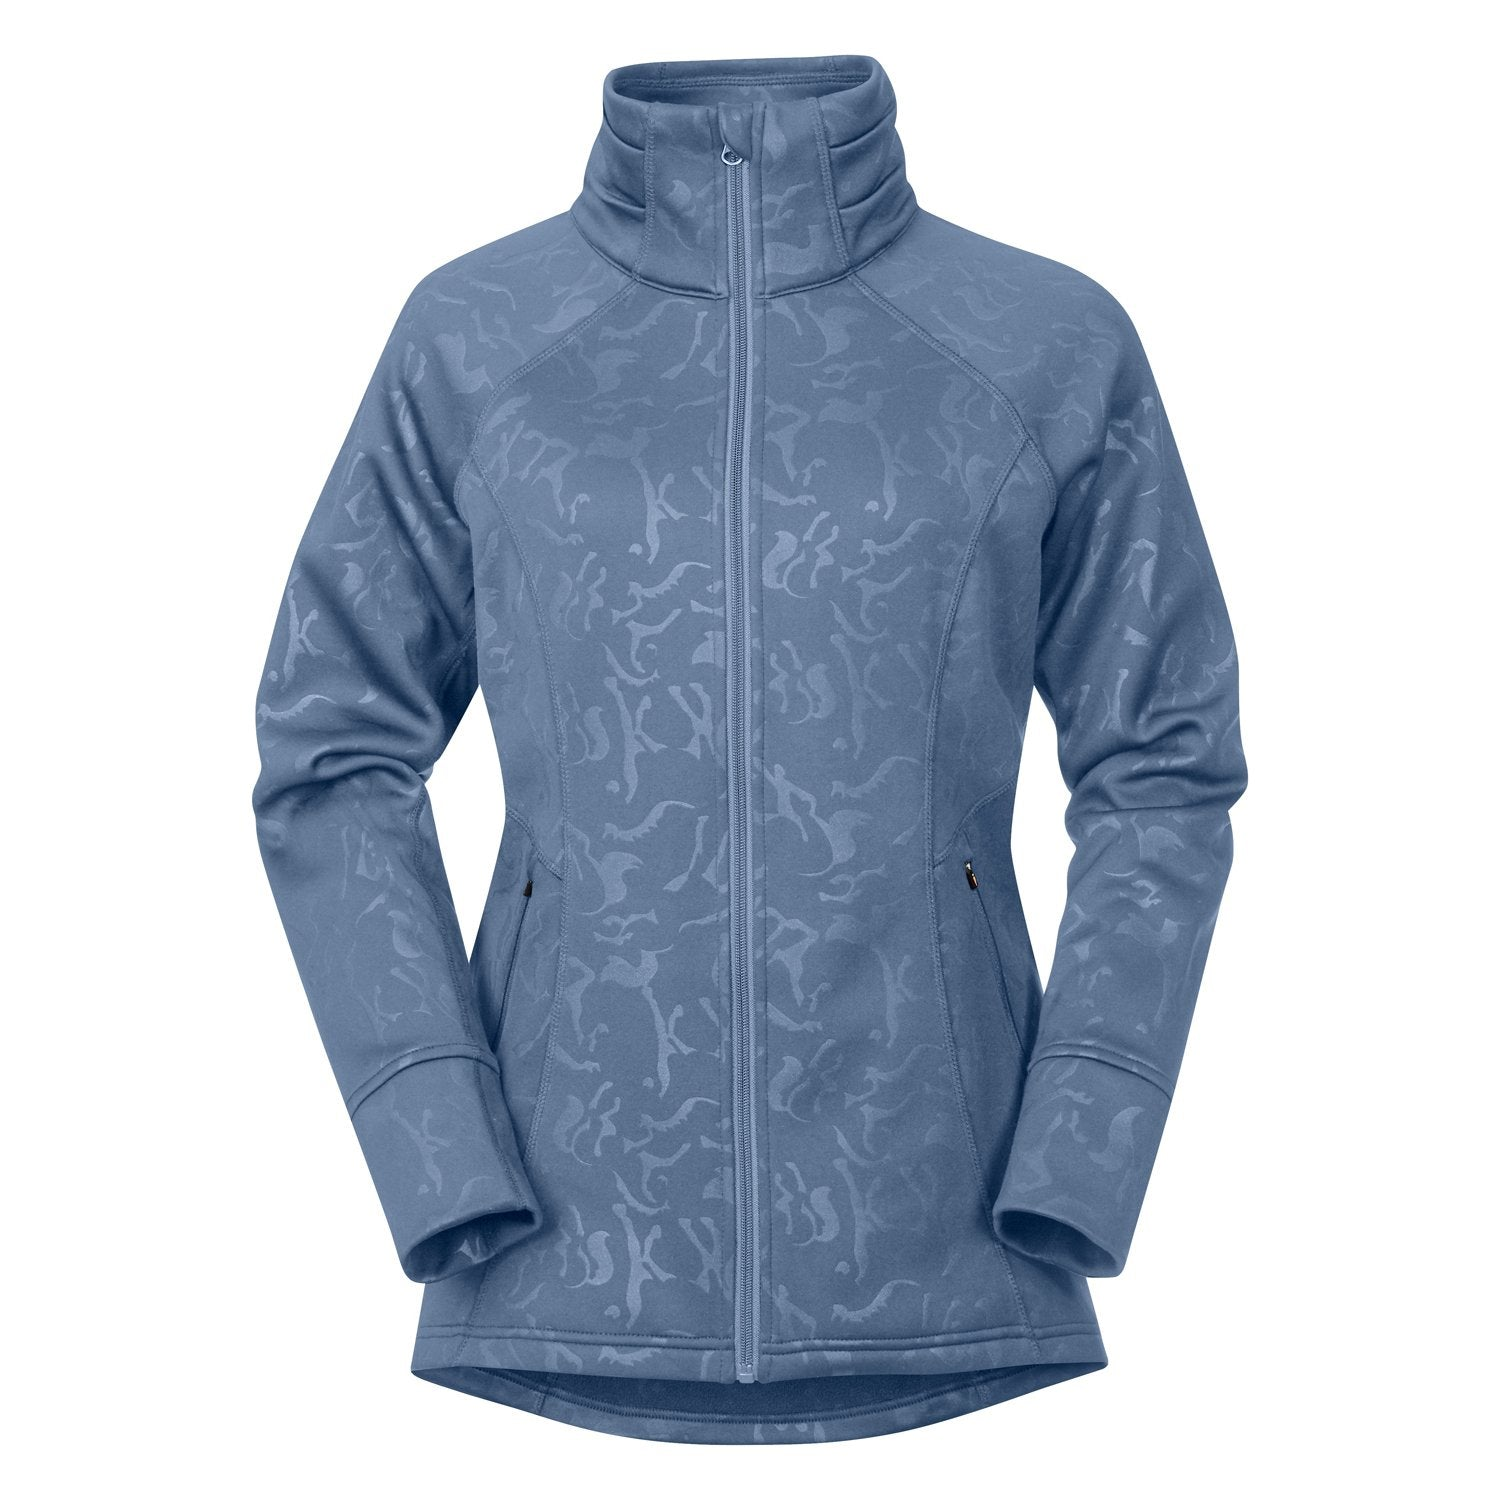 Kerrits Flex Fleece Jacket - SALE - North Shore Saddlery